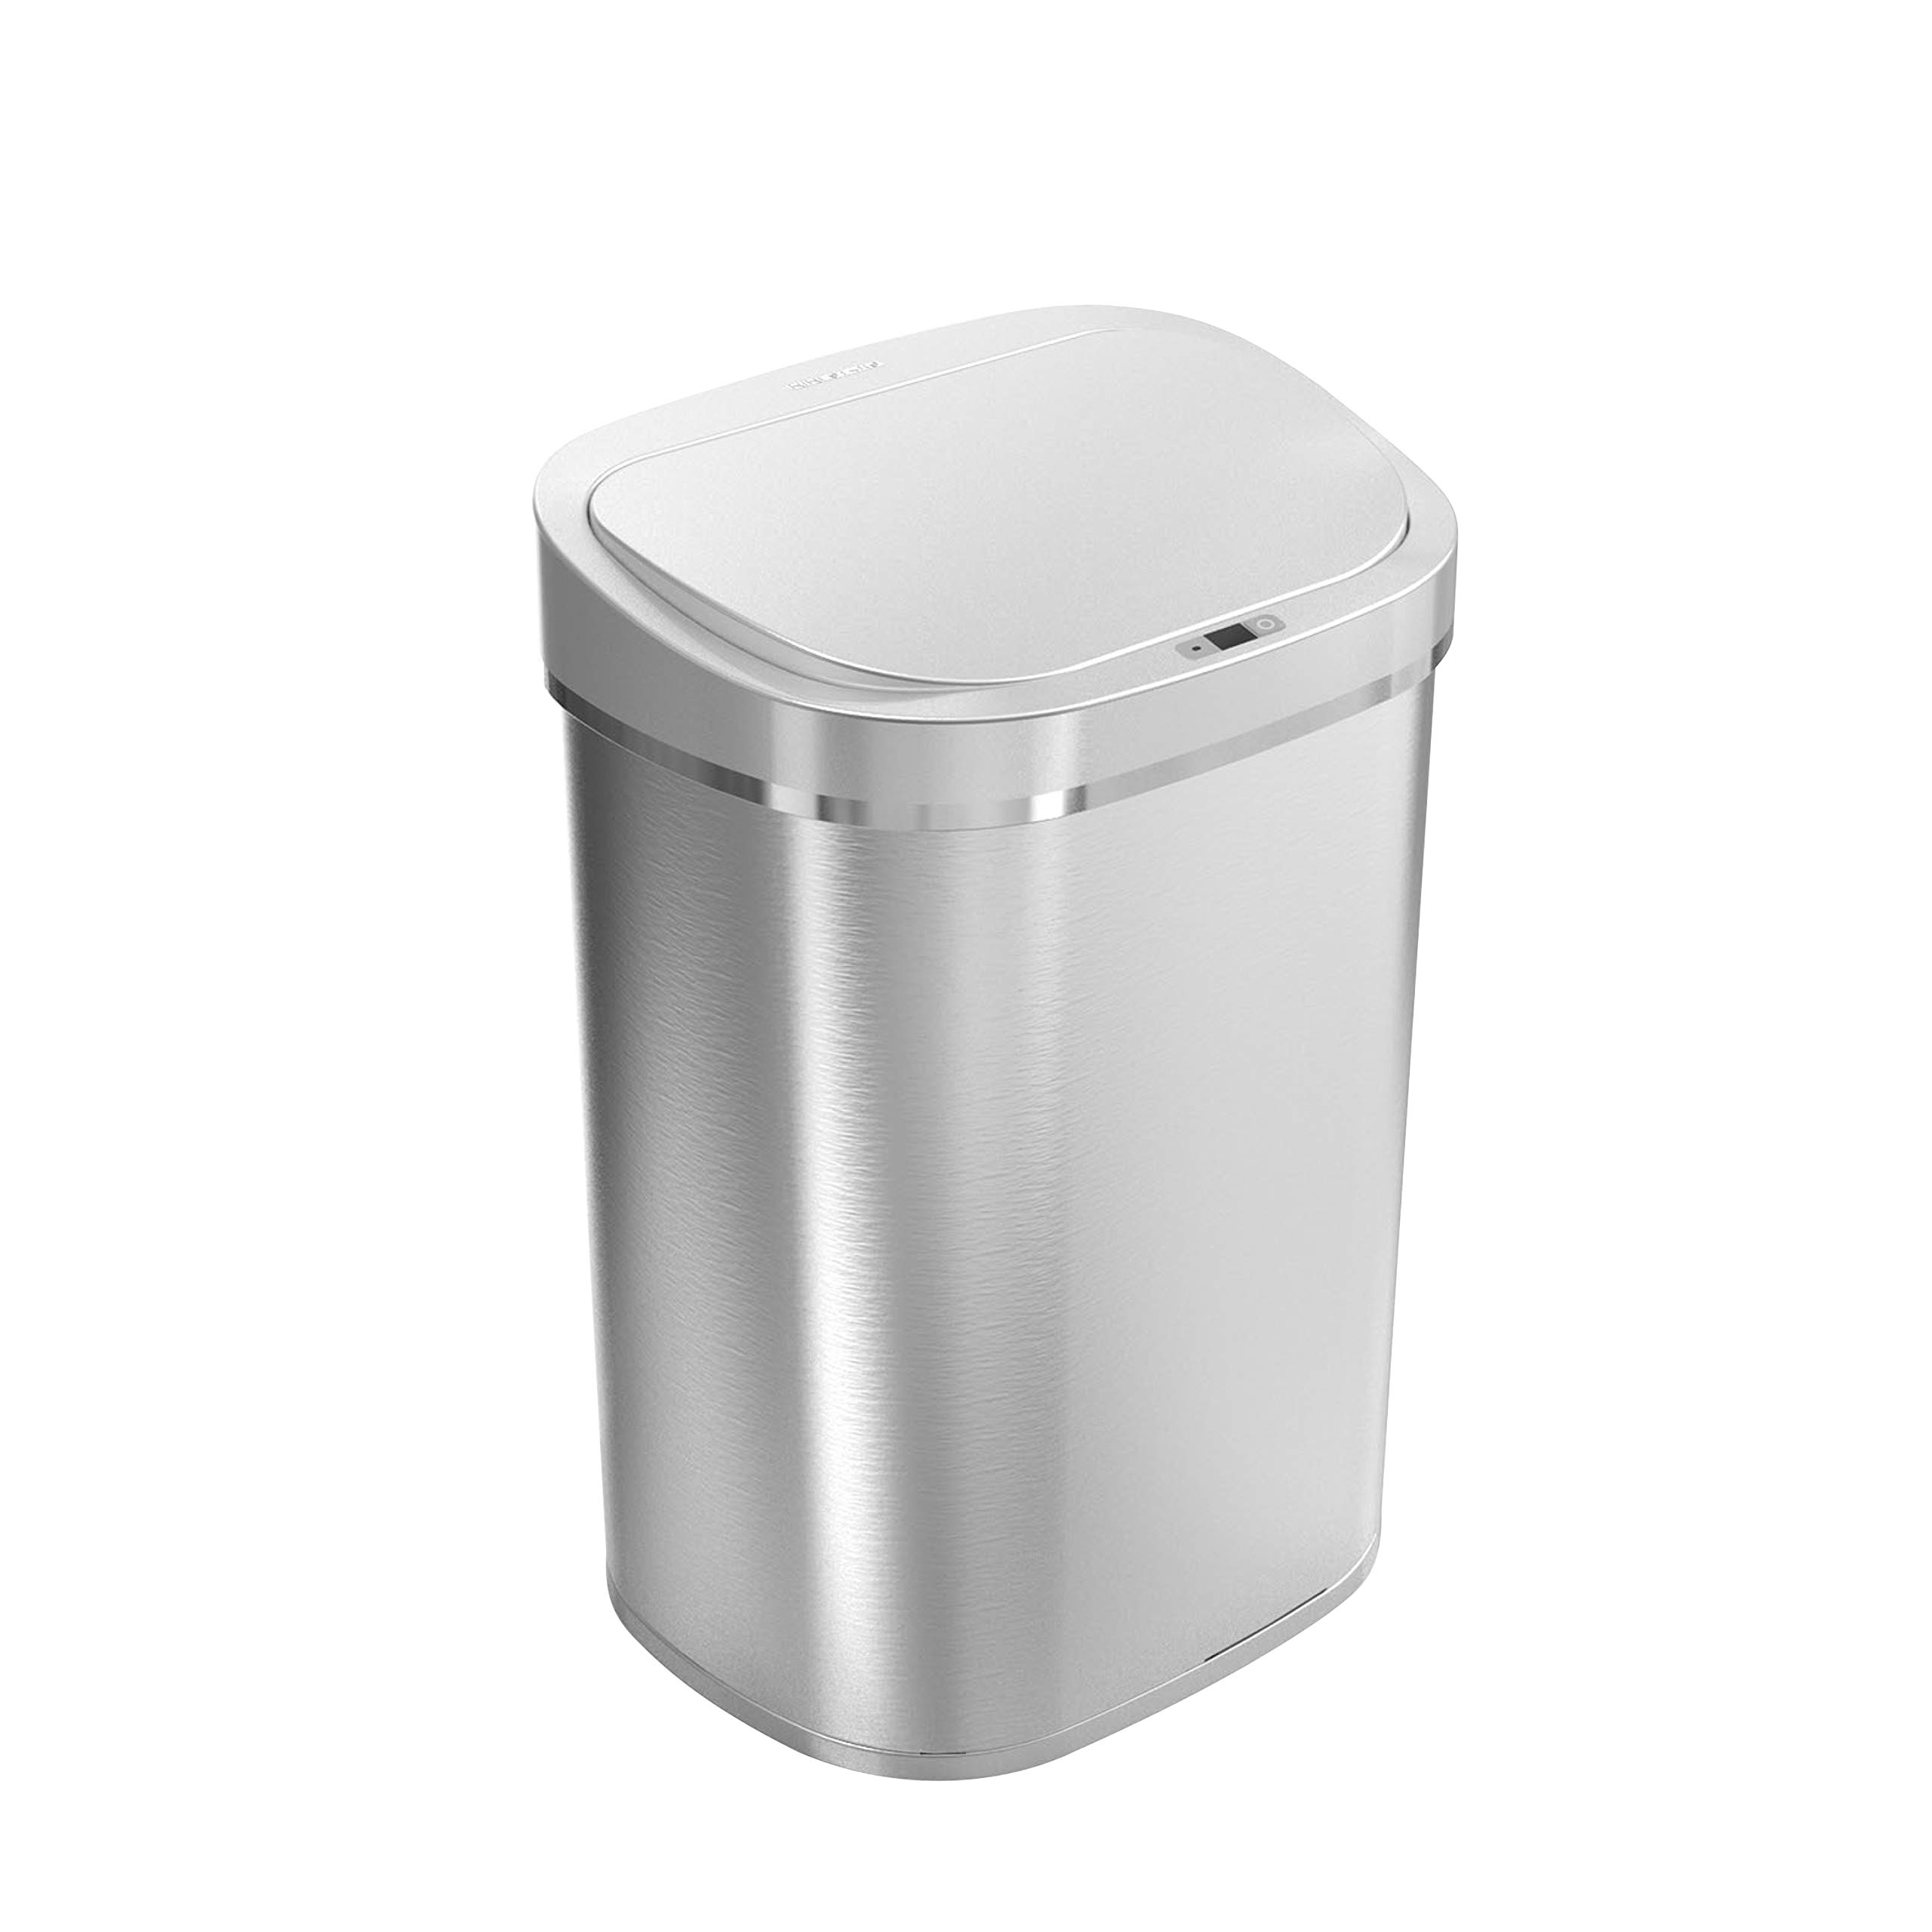 Ninestars DZT-80-35 Automatic Touchless Infrared Motion Sensor Trash Can, 21 Gal 80L, Heavy Duty Stainless Steel Base (Oval, Silver/Brush Lid) Trashcan SS